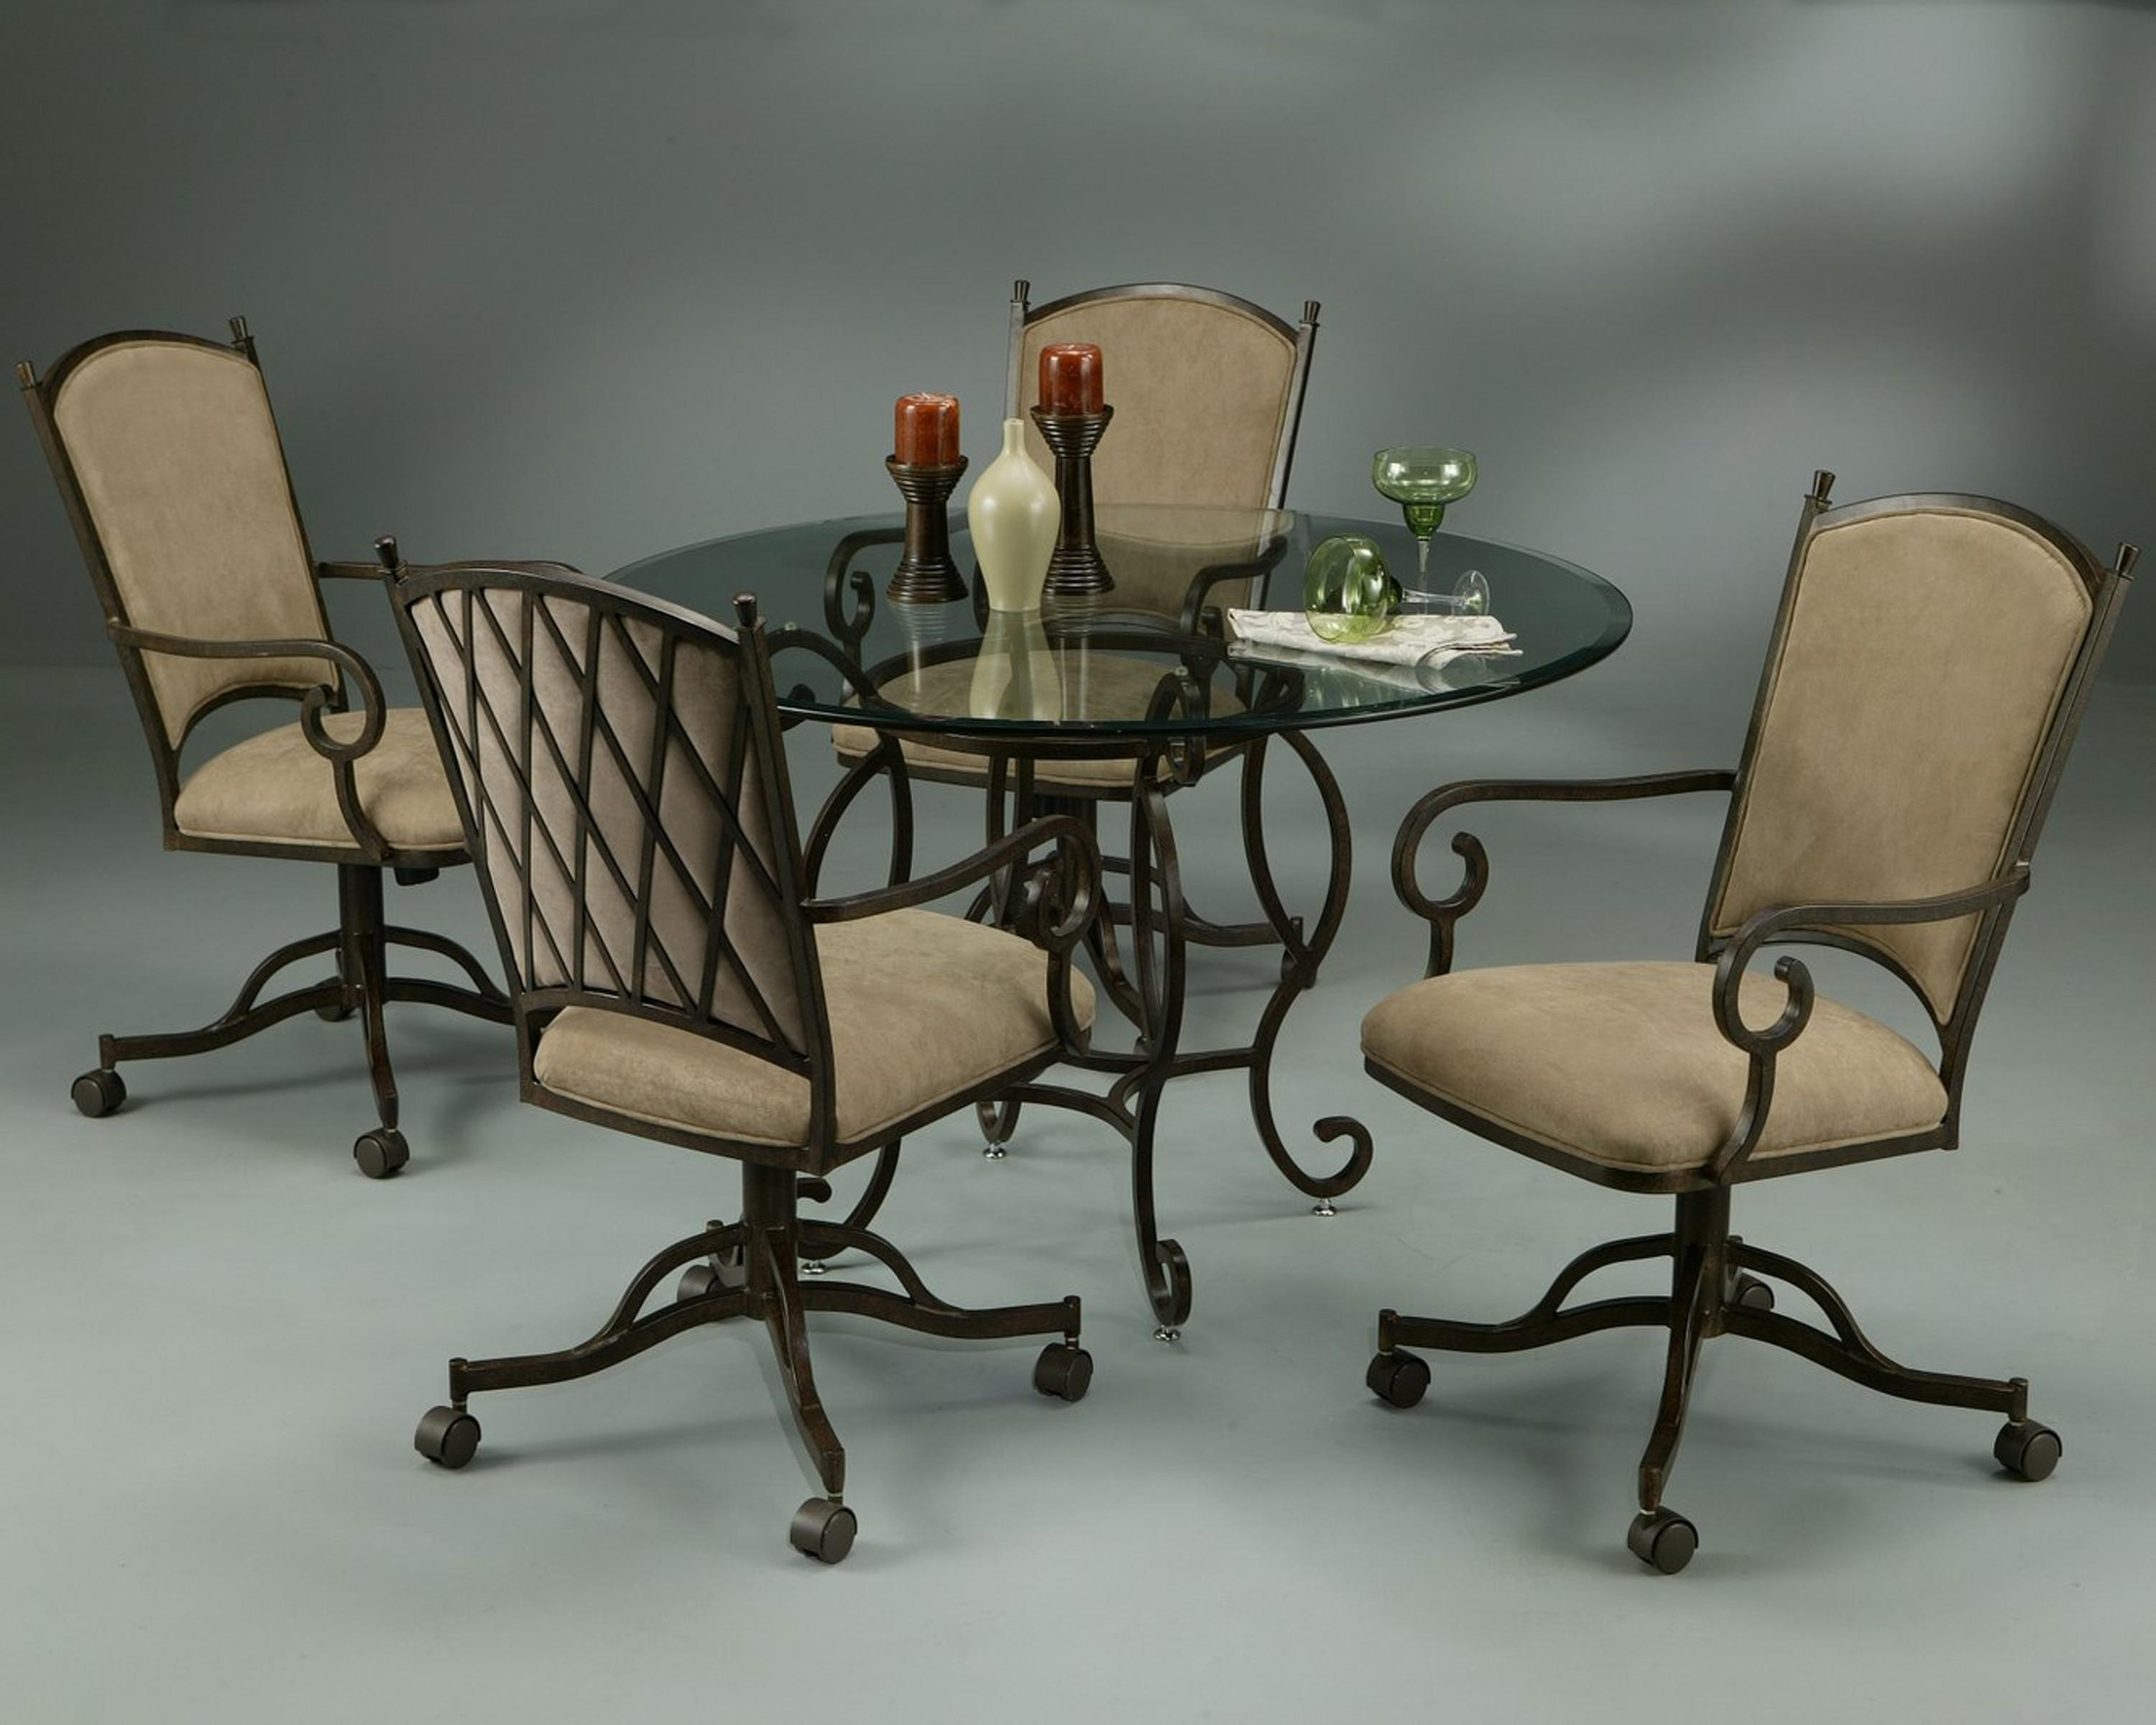 Dining Table With Atrium Caster Chairs With Casters Sofas (Image 8 of 20)